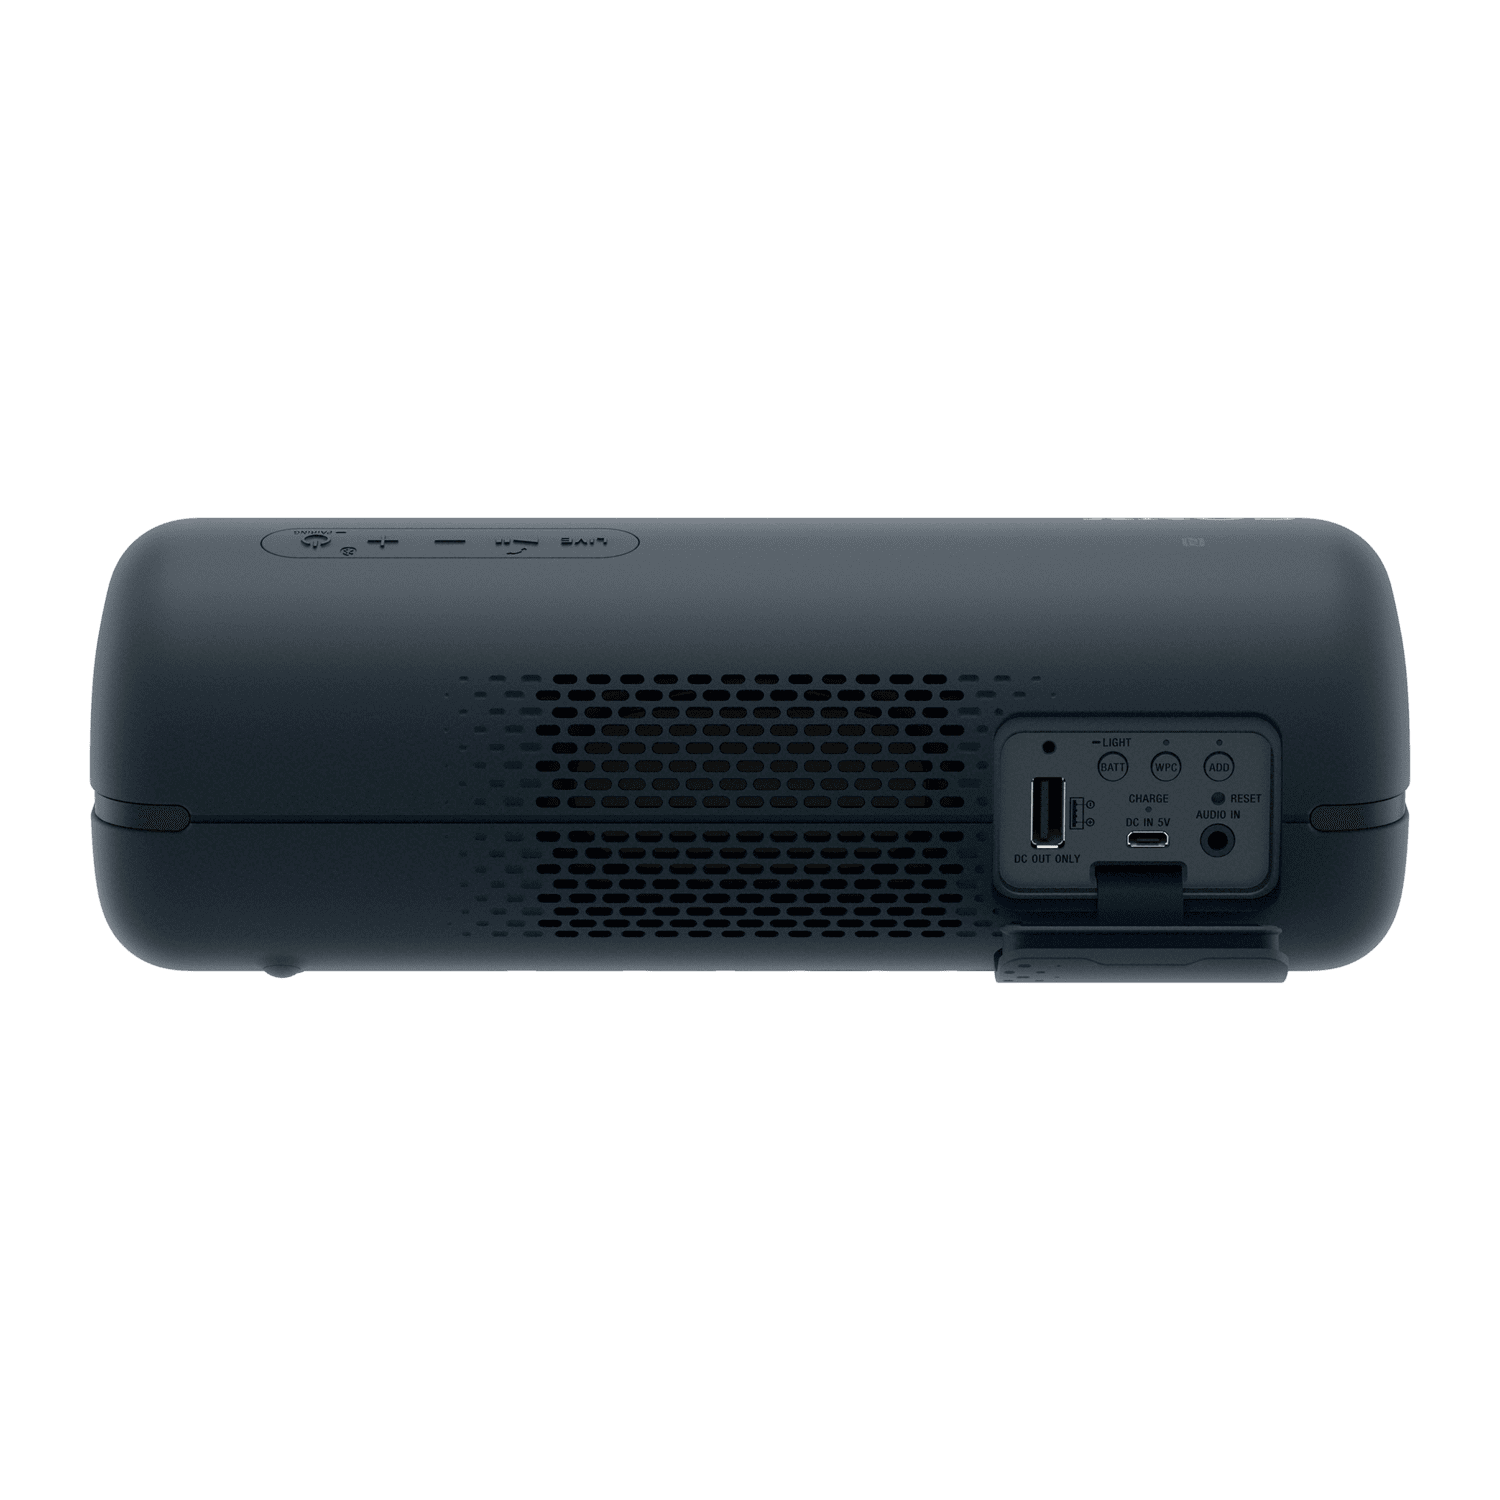 XB32 EXTRA BASS Portable BLUETOOTH Speaker (Black), , product-image